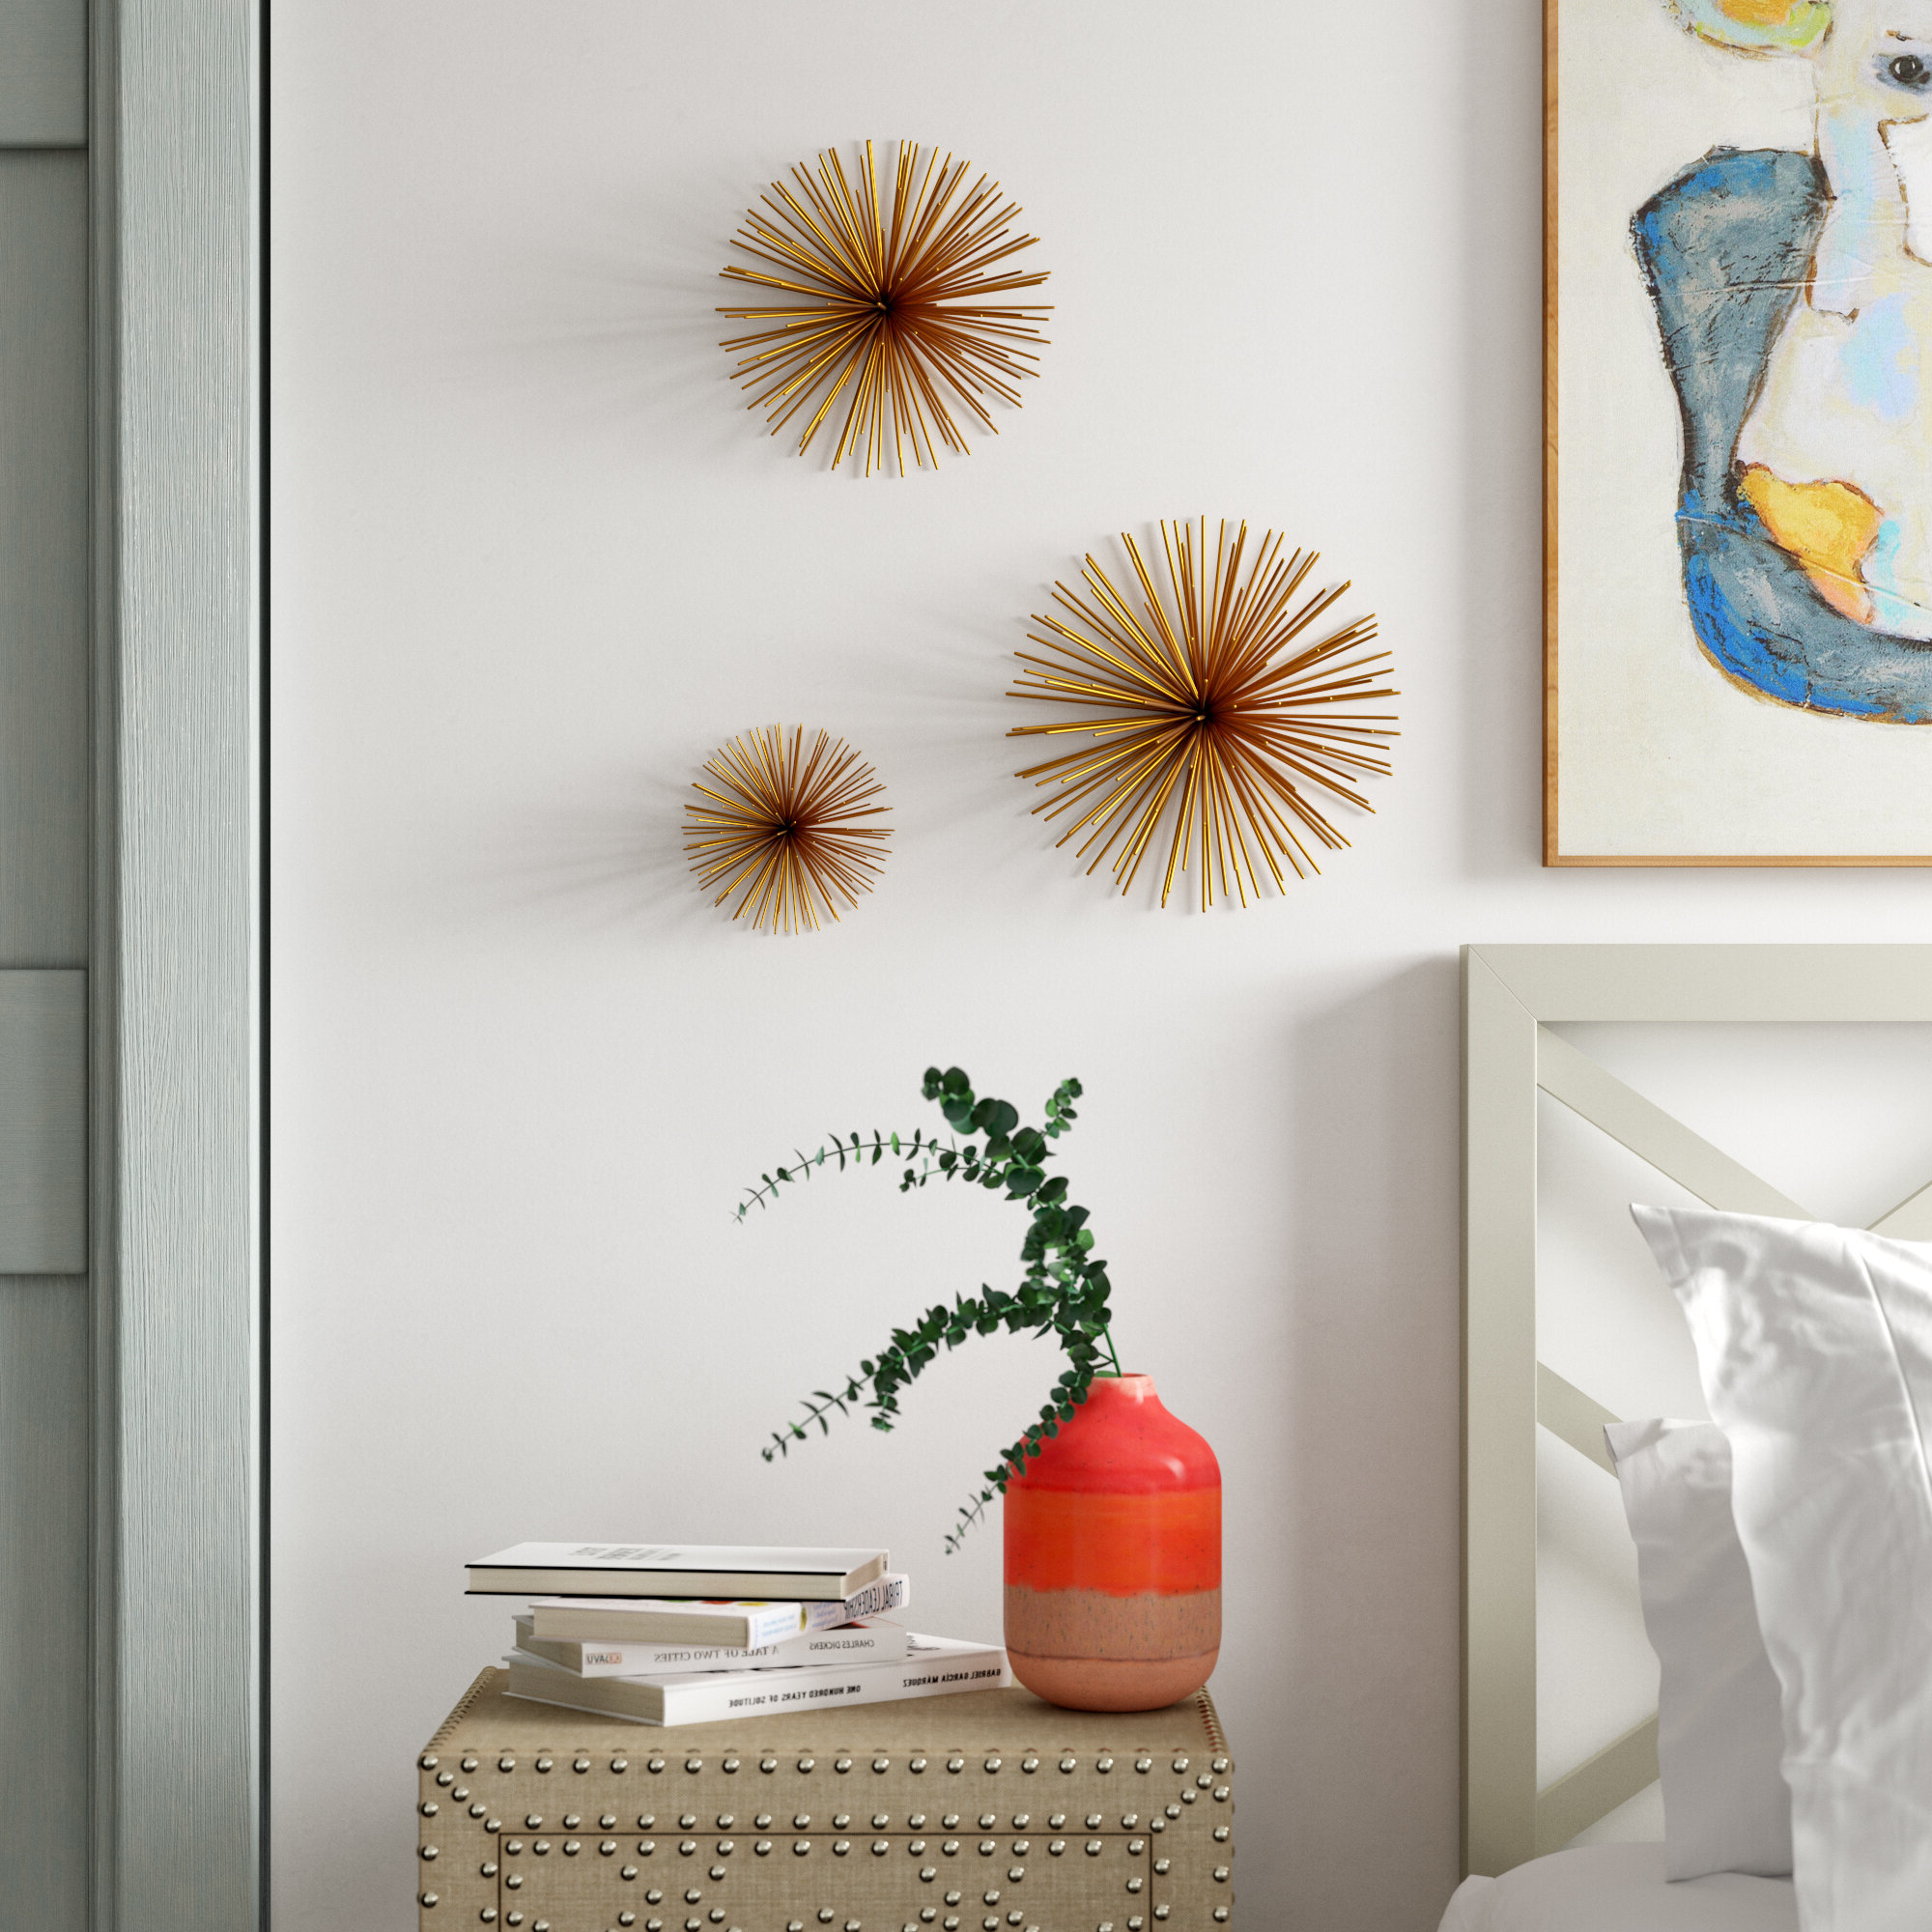 2 Piece Starburst Wall Décor Set By Wrought Studio With Regard To Well Known 3 Piece Large Starburst Wall Décor Set (View 6 of 20)